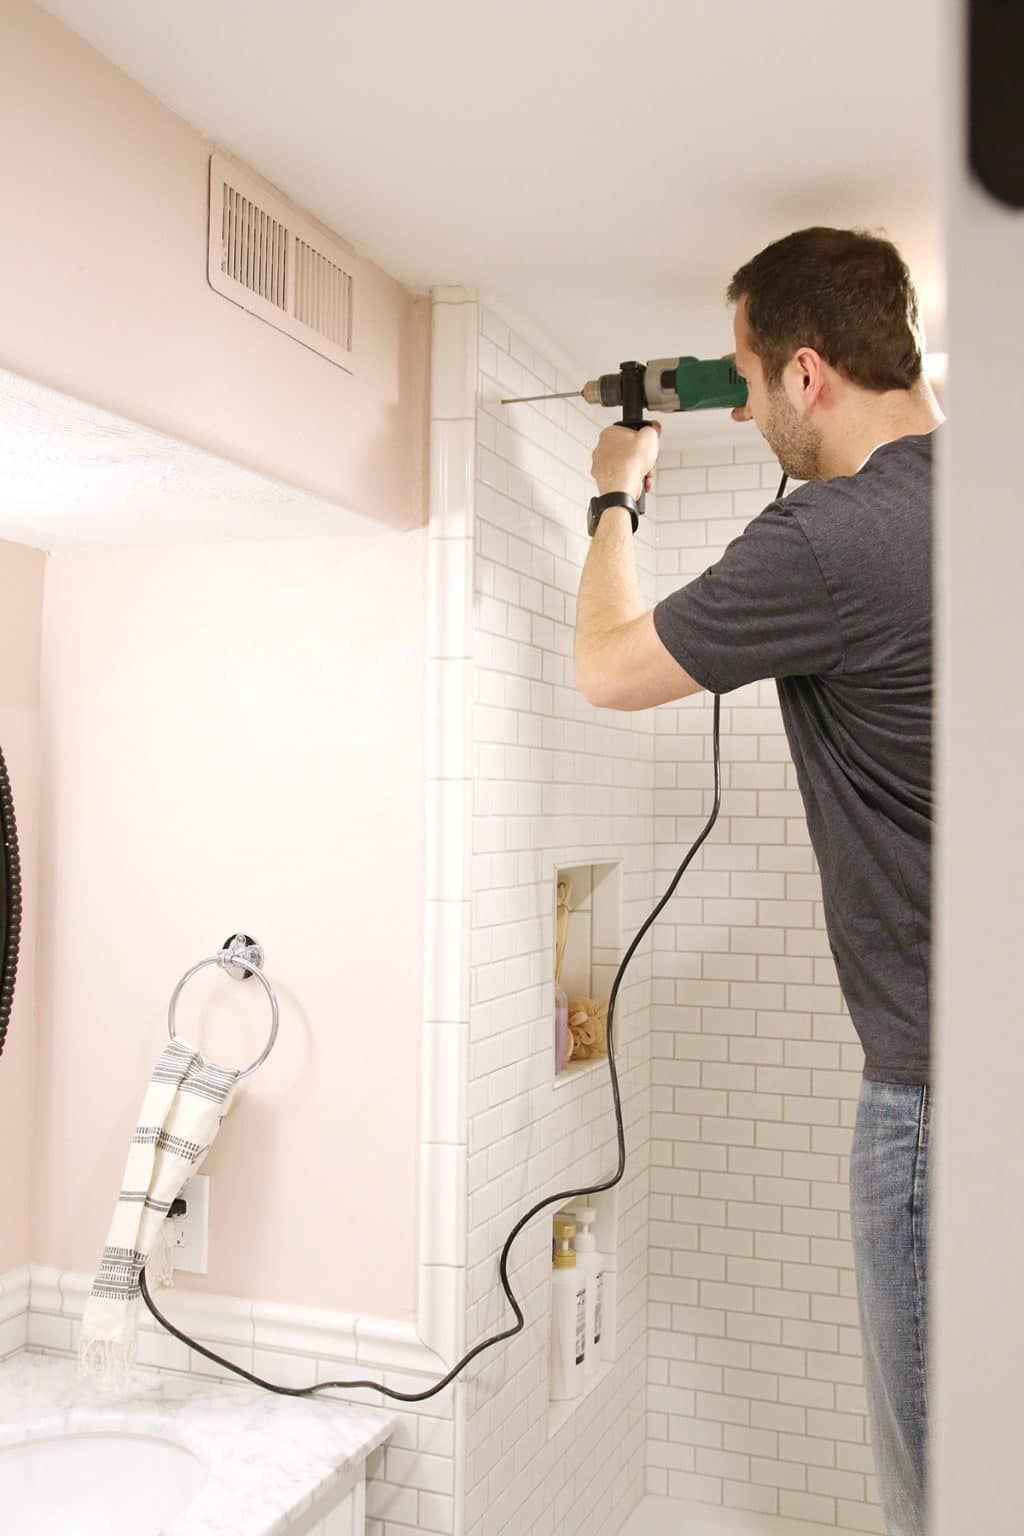 How to drill into tile to hang a shower curtain miter